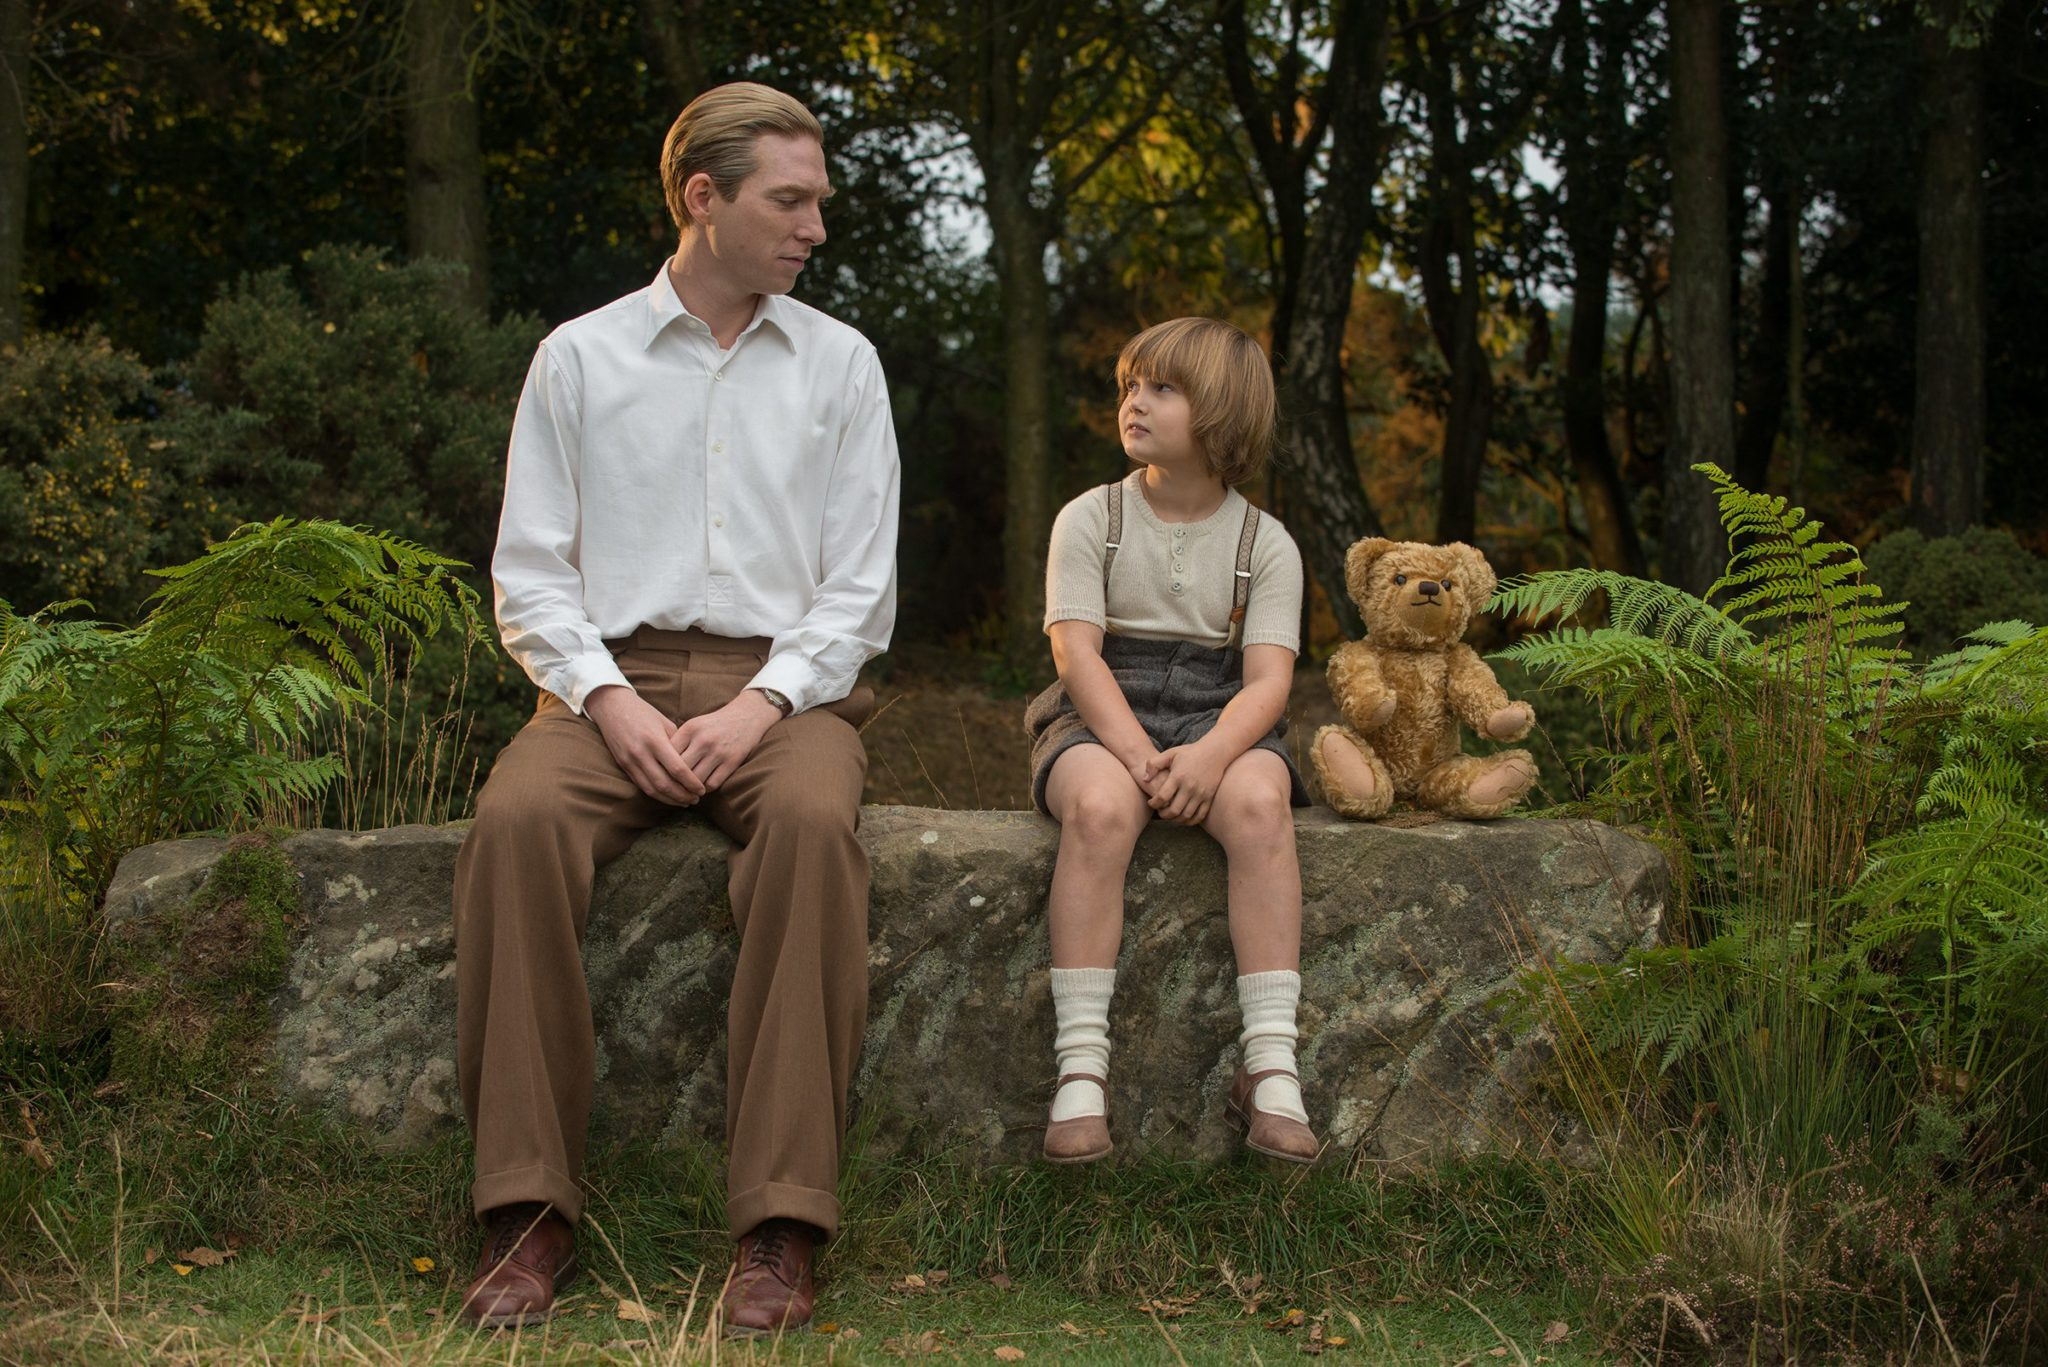 'Goodbye Christopher Robin' will ruin Winnie the Pooh and your childhood